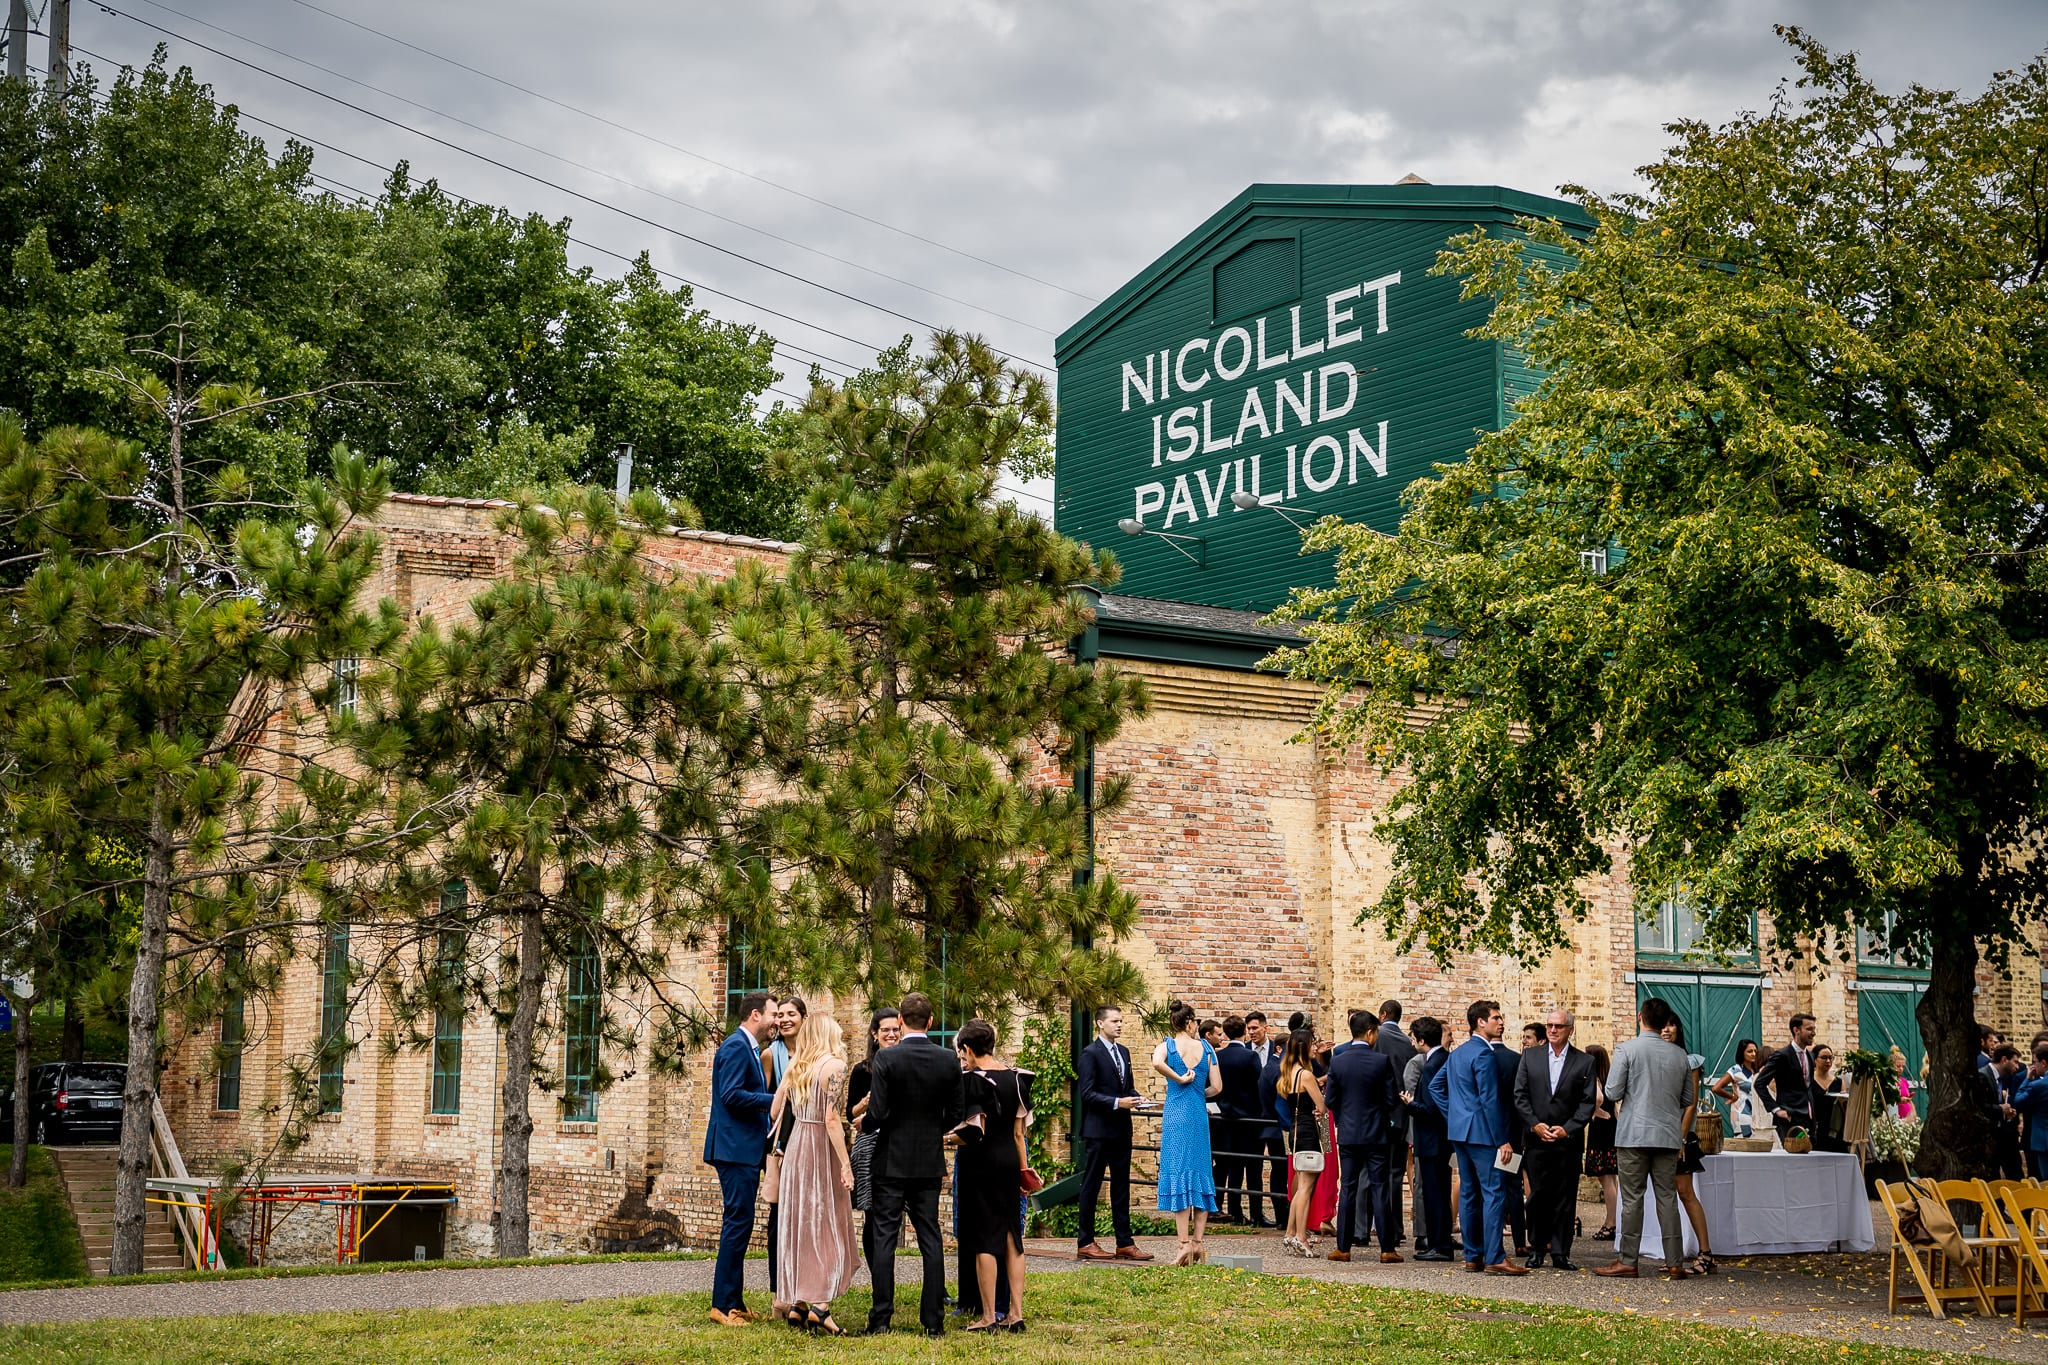 Nicollet Island Pavilion signage and guests arriving prior to an outdoor summer wedding ceremony